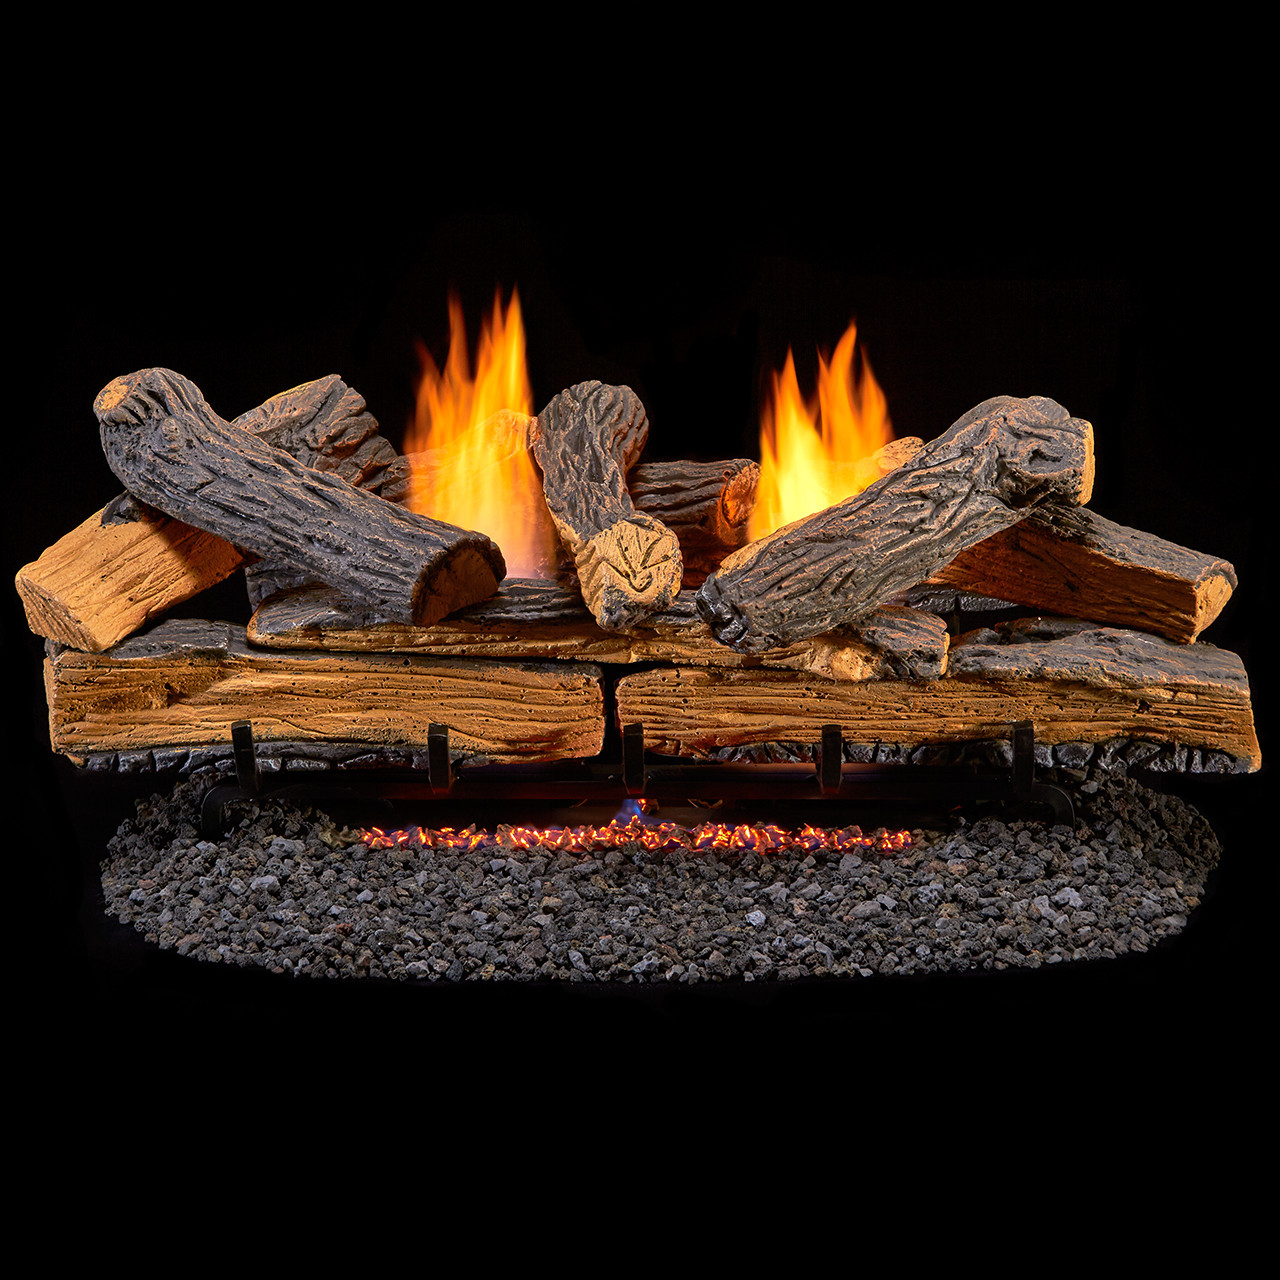 propane gas log fireplace.  Ventless Gas Log Natural Propane Factory Buys Direct